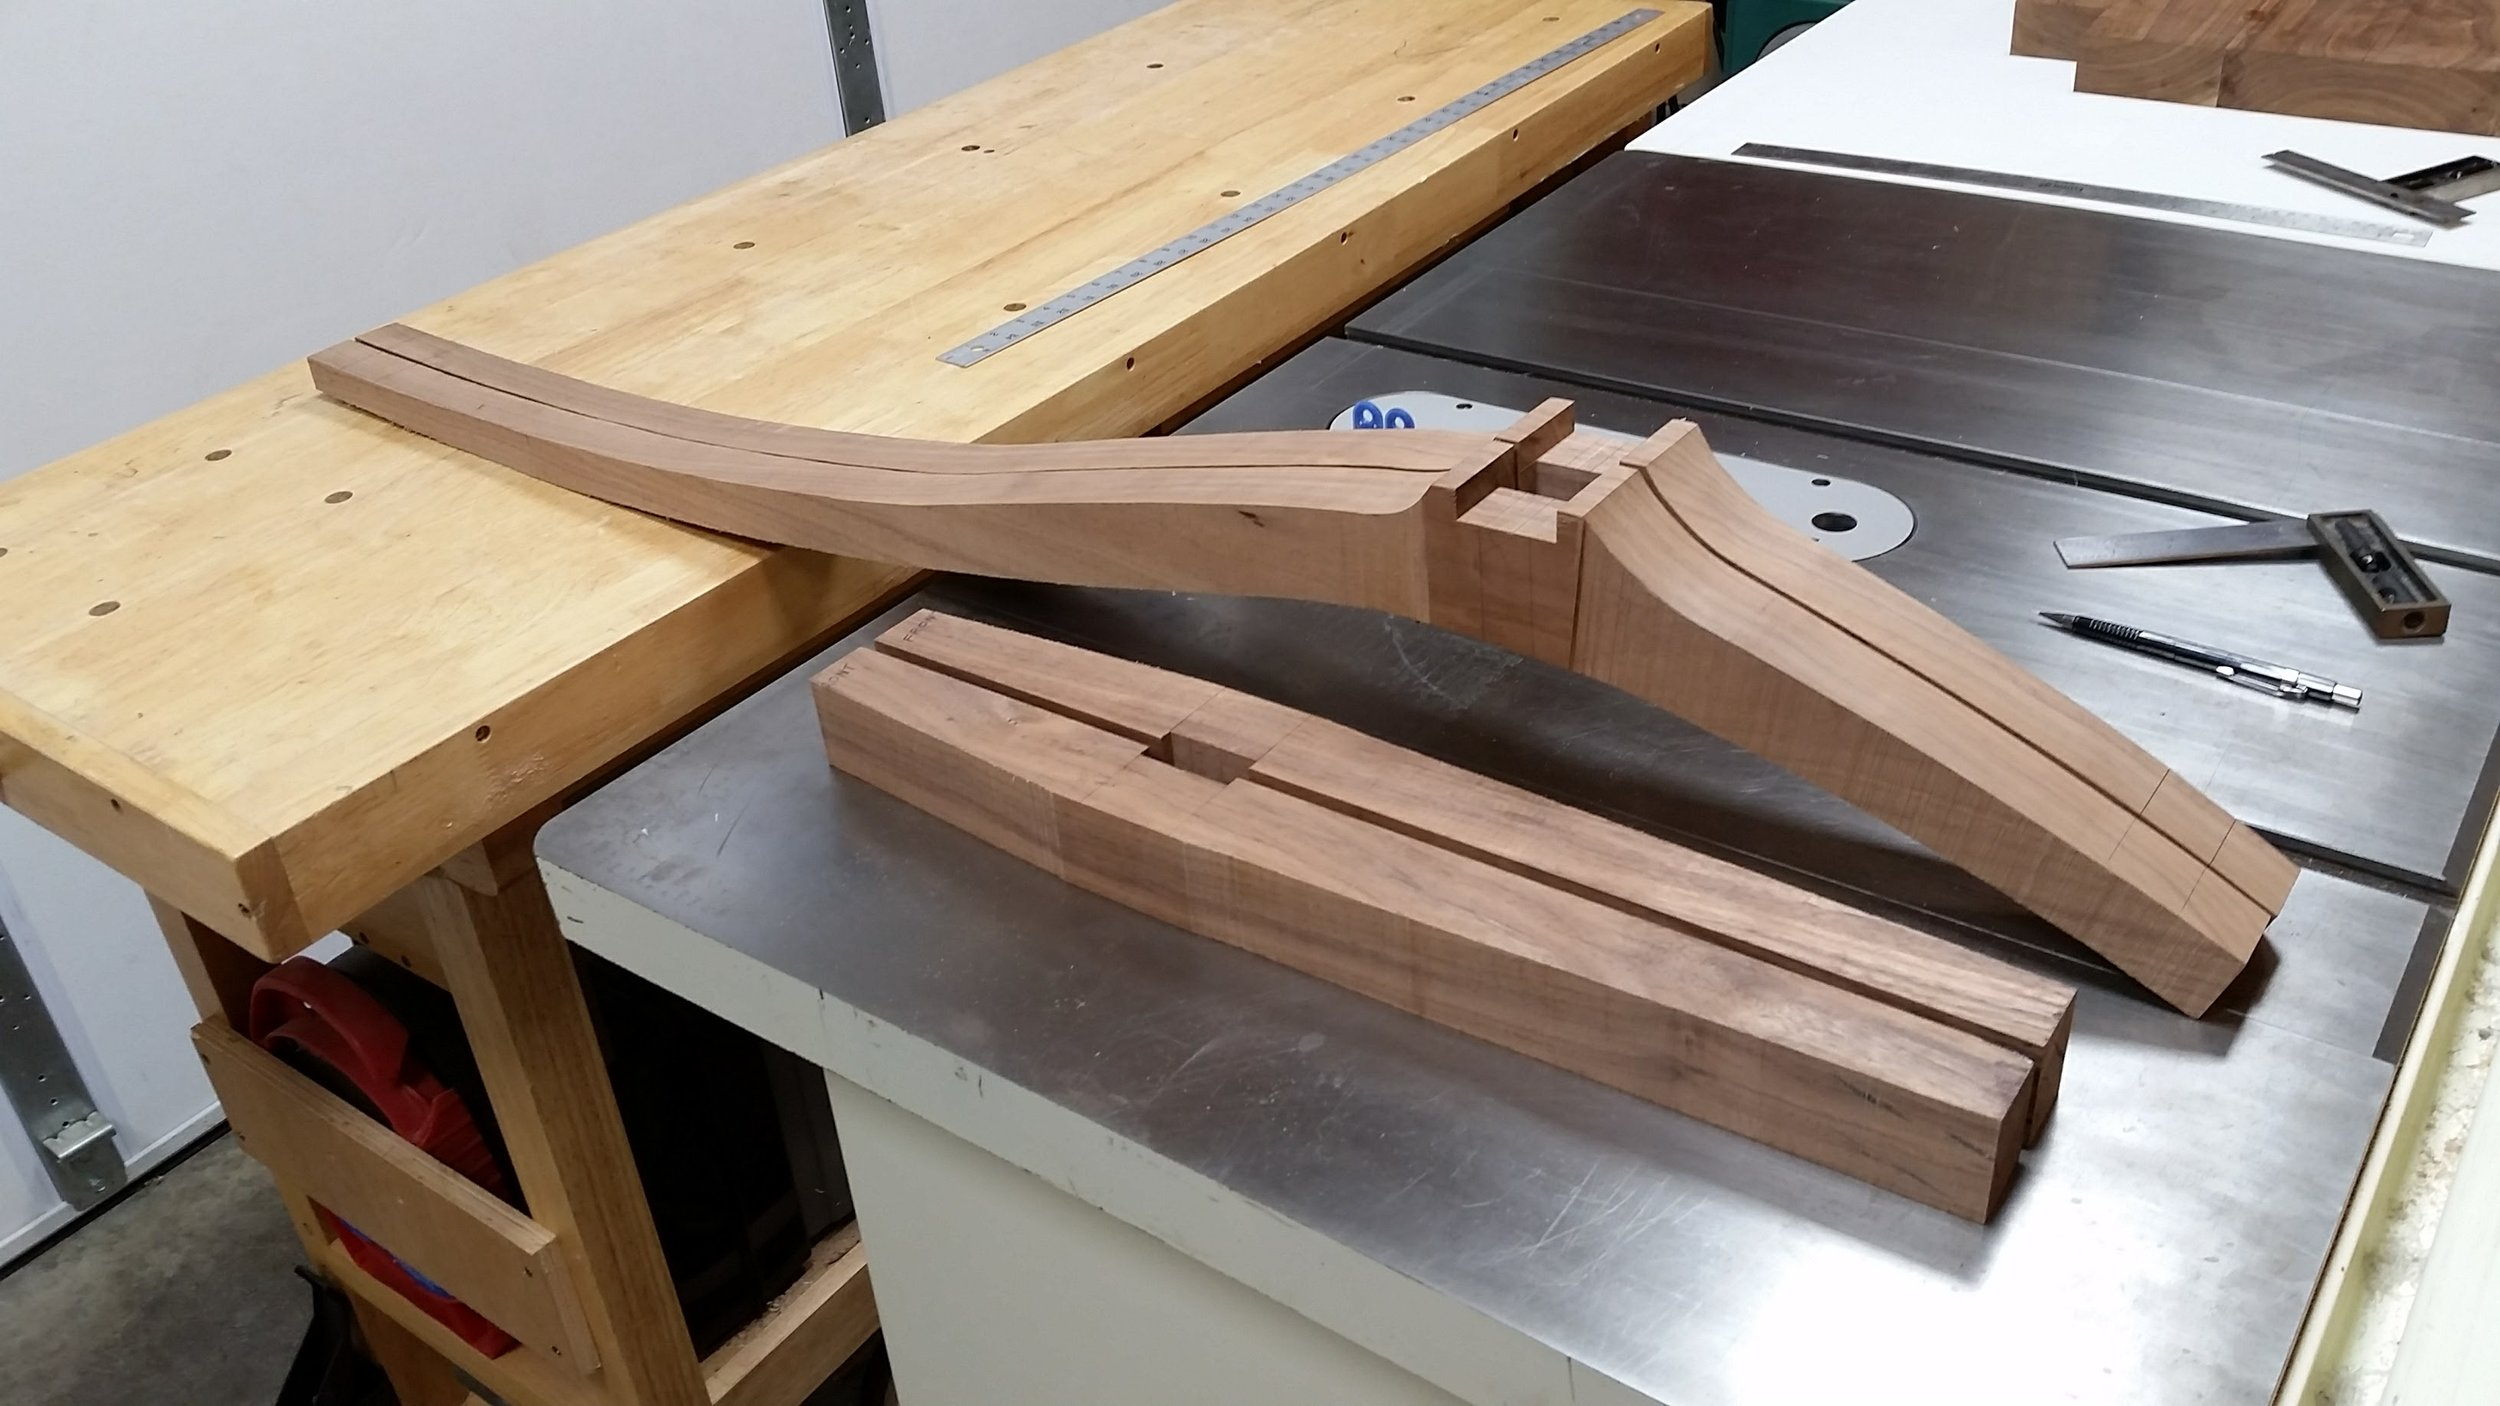 After some simple layout lines, I cut tapers into the edges of the front and rear legs using the bandsaw.